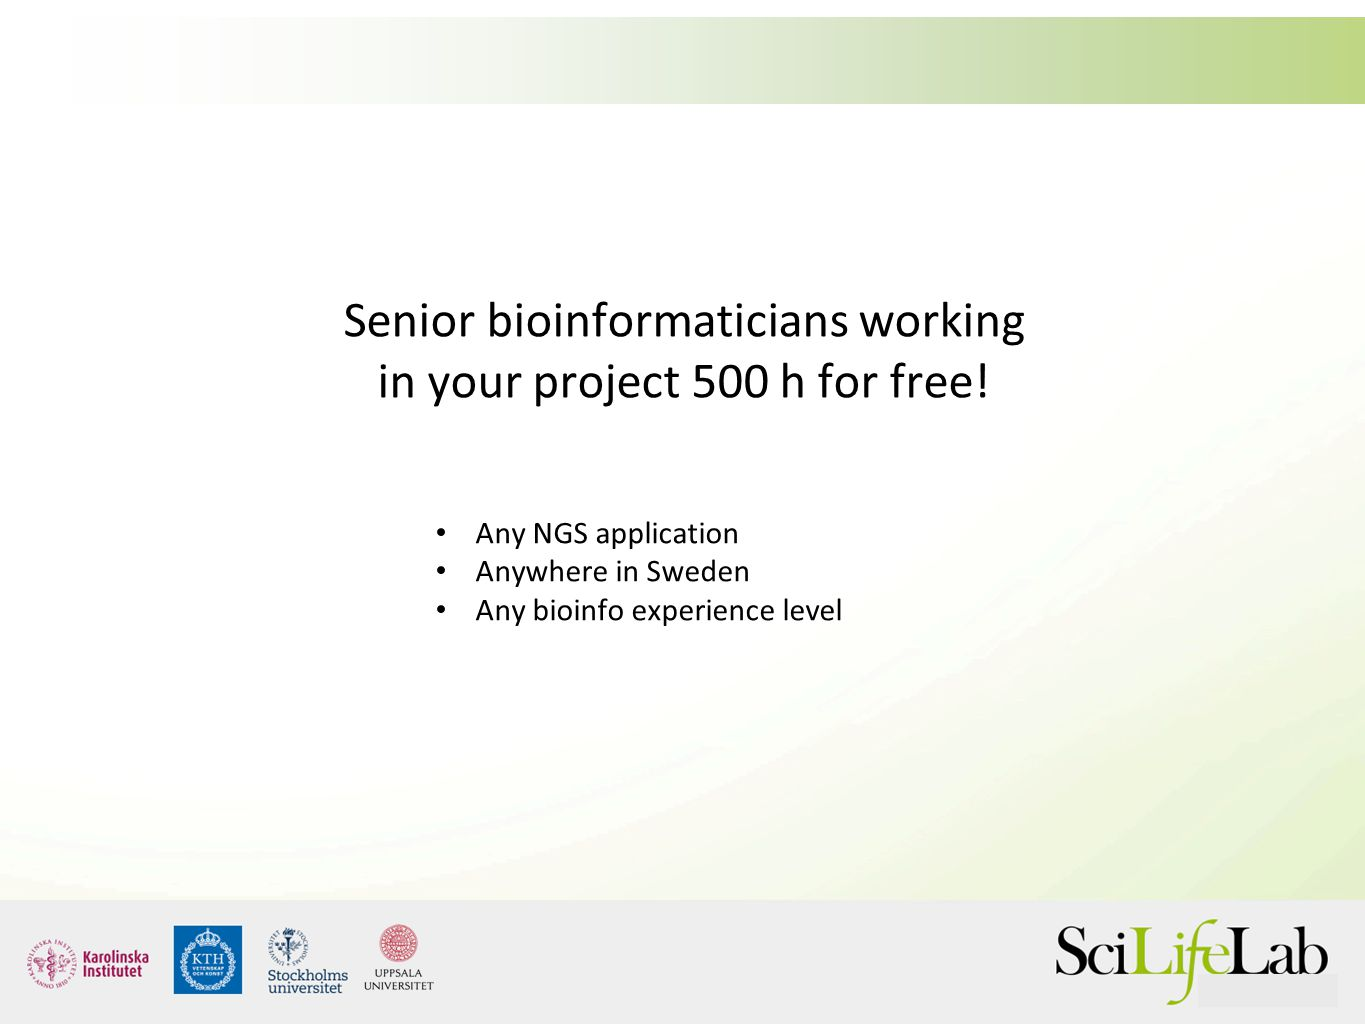 Senior bioinformaticians working in your project 500 h for free! Any NGS application Anywhere in Sweden Any bioinfo experience level